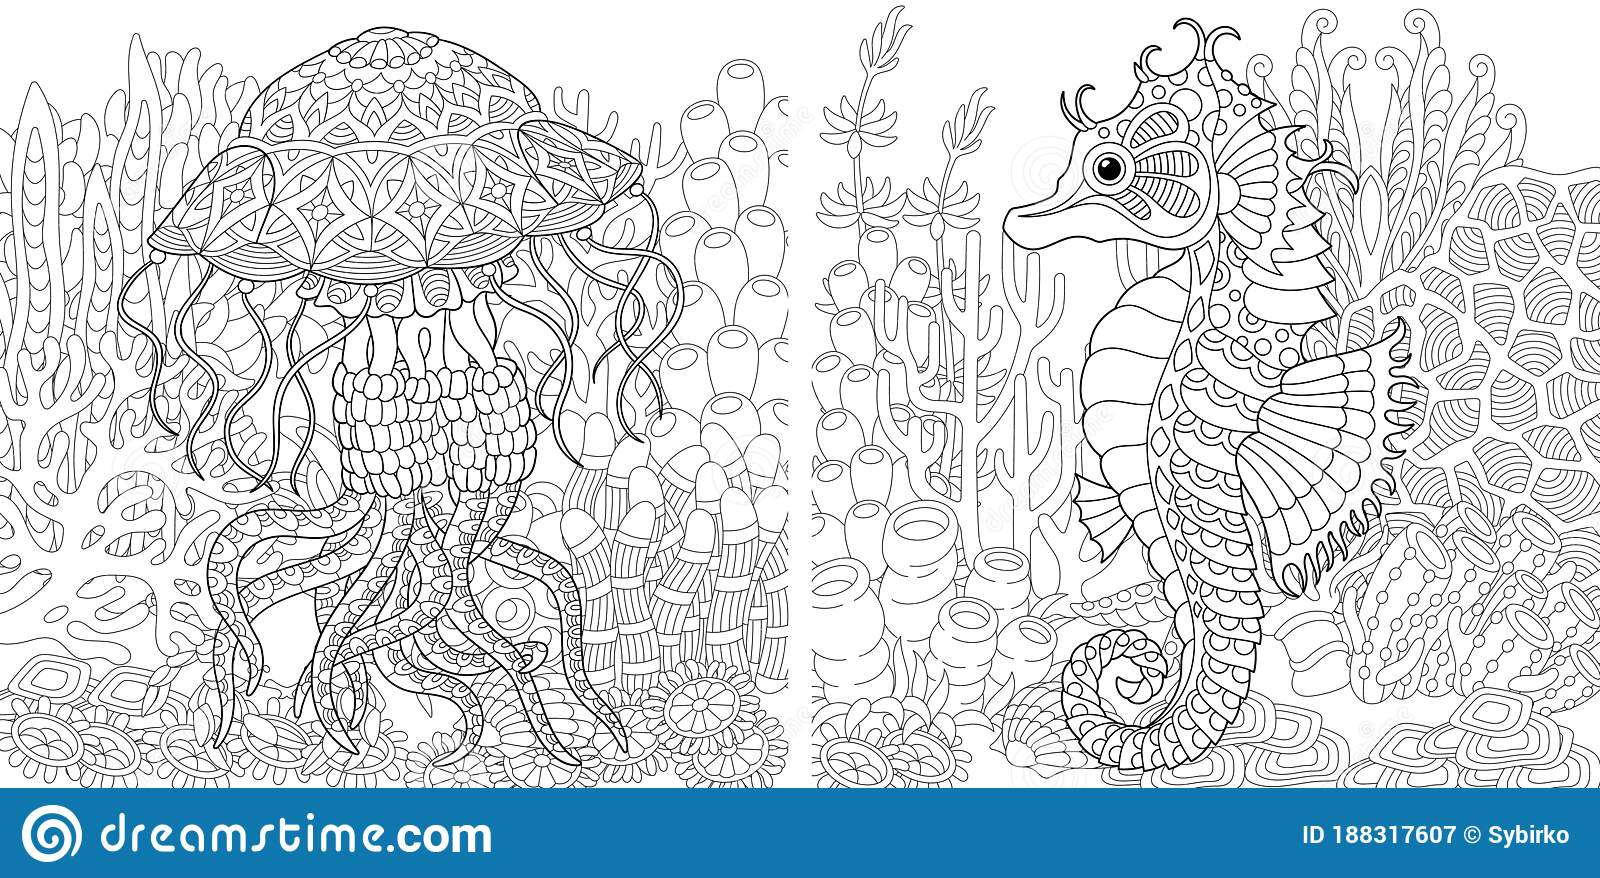 Coloring Pages With Jellyfish And Seahorse Stock Vector Illustration Of Freehand Beautiful 188317607